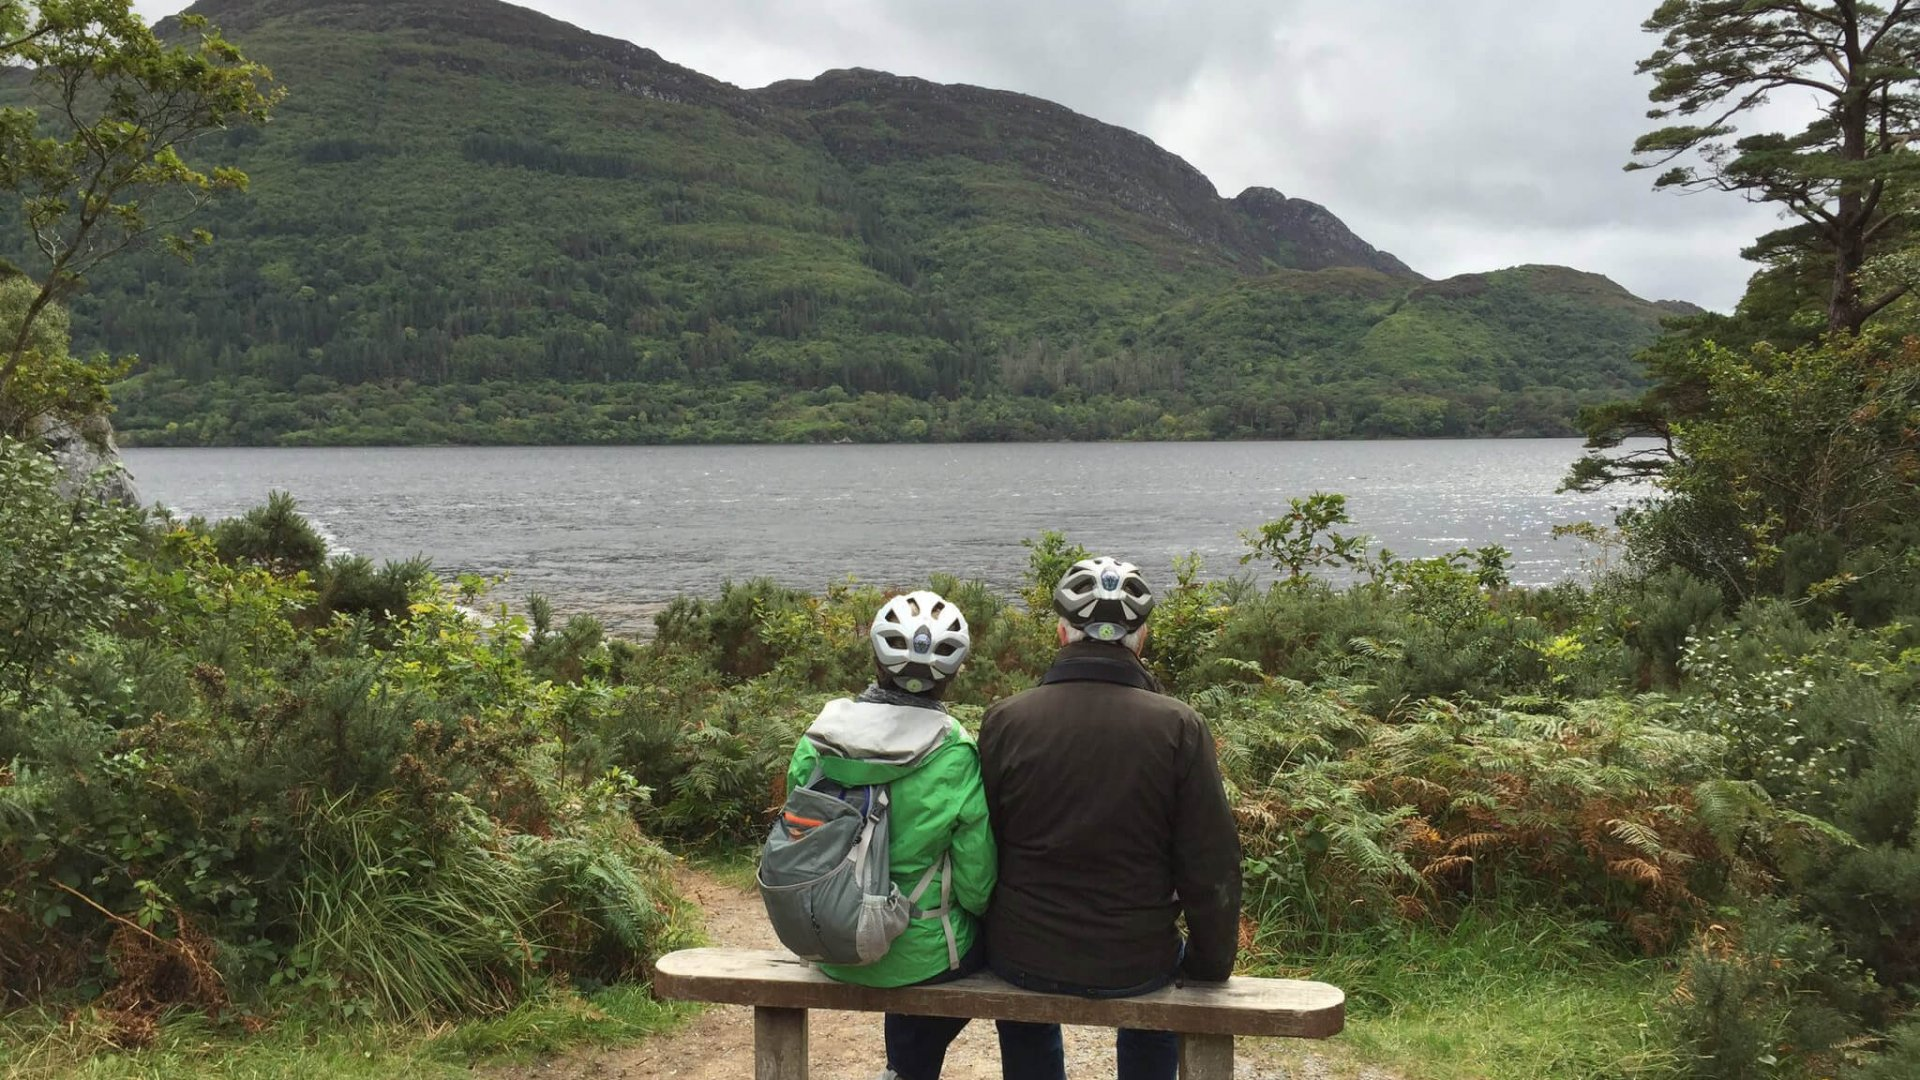 Couple dressed for cycling, sitting on a bench with their back to the camera, looking at the view of scenic Lough Leane in Killarney National Park, Ireland, on a Vagabond Tour